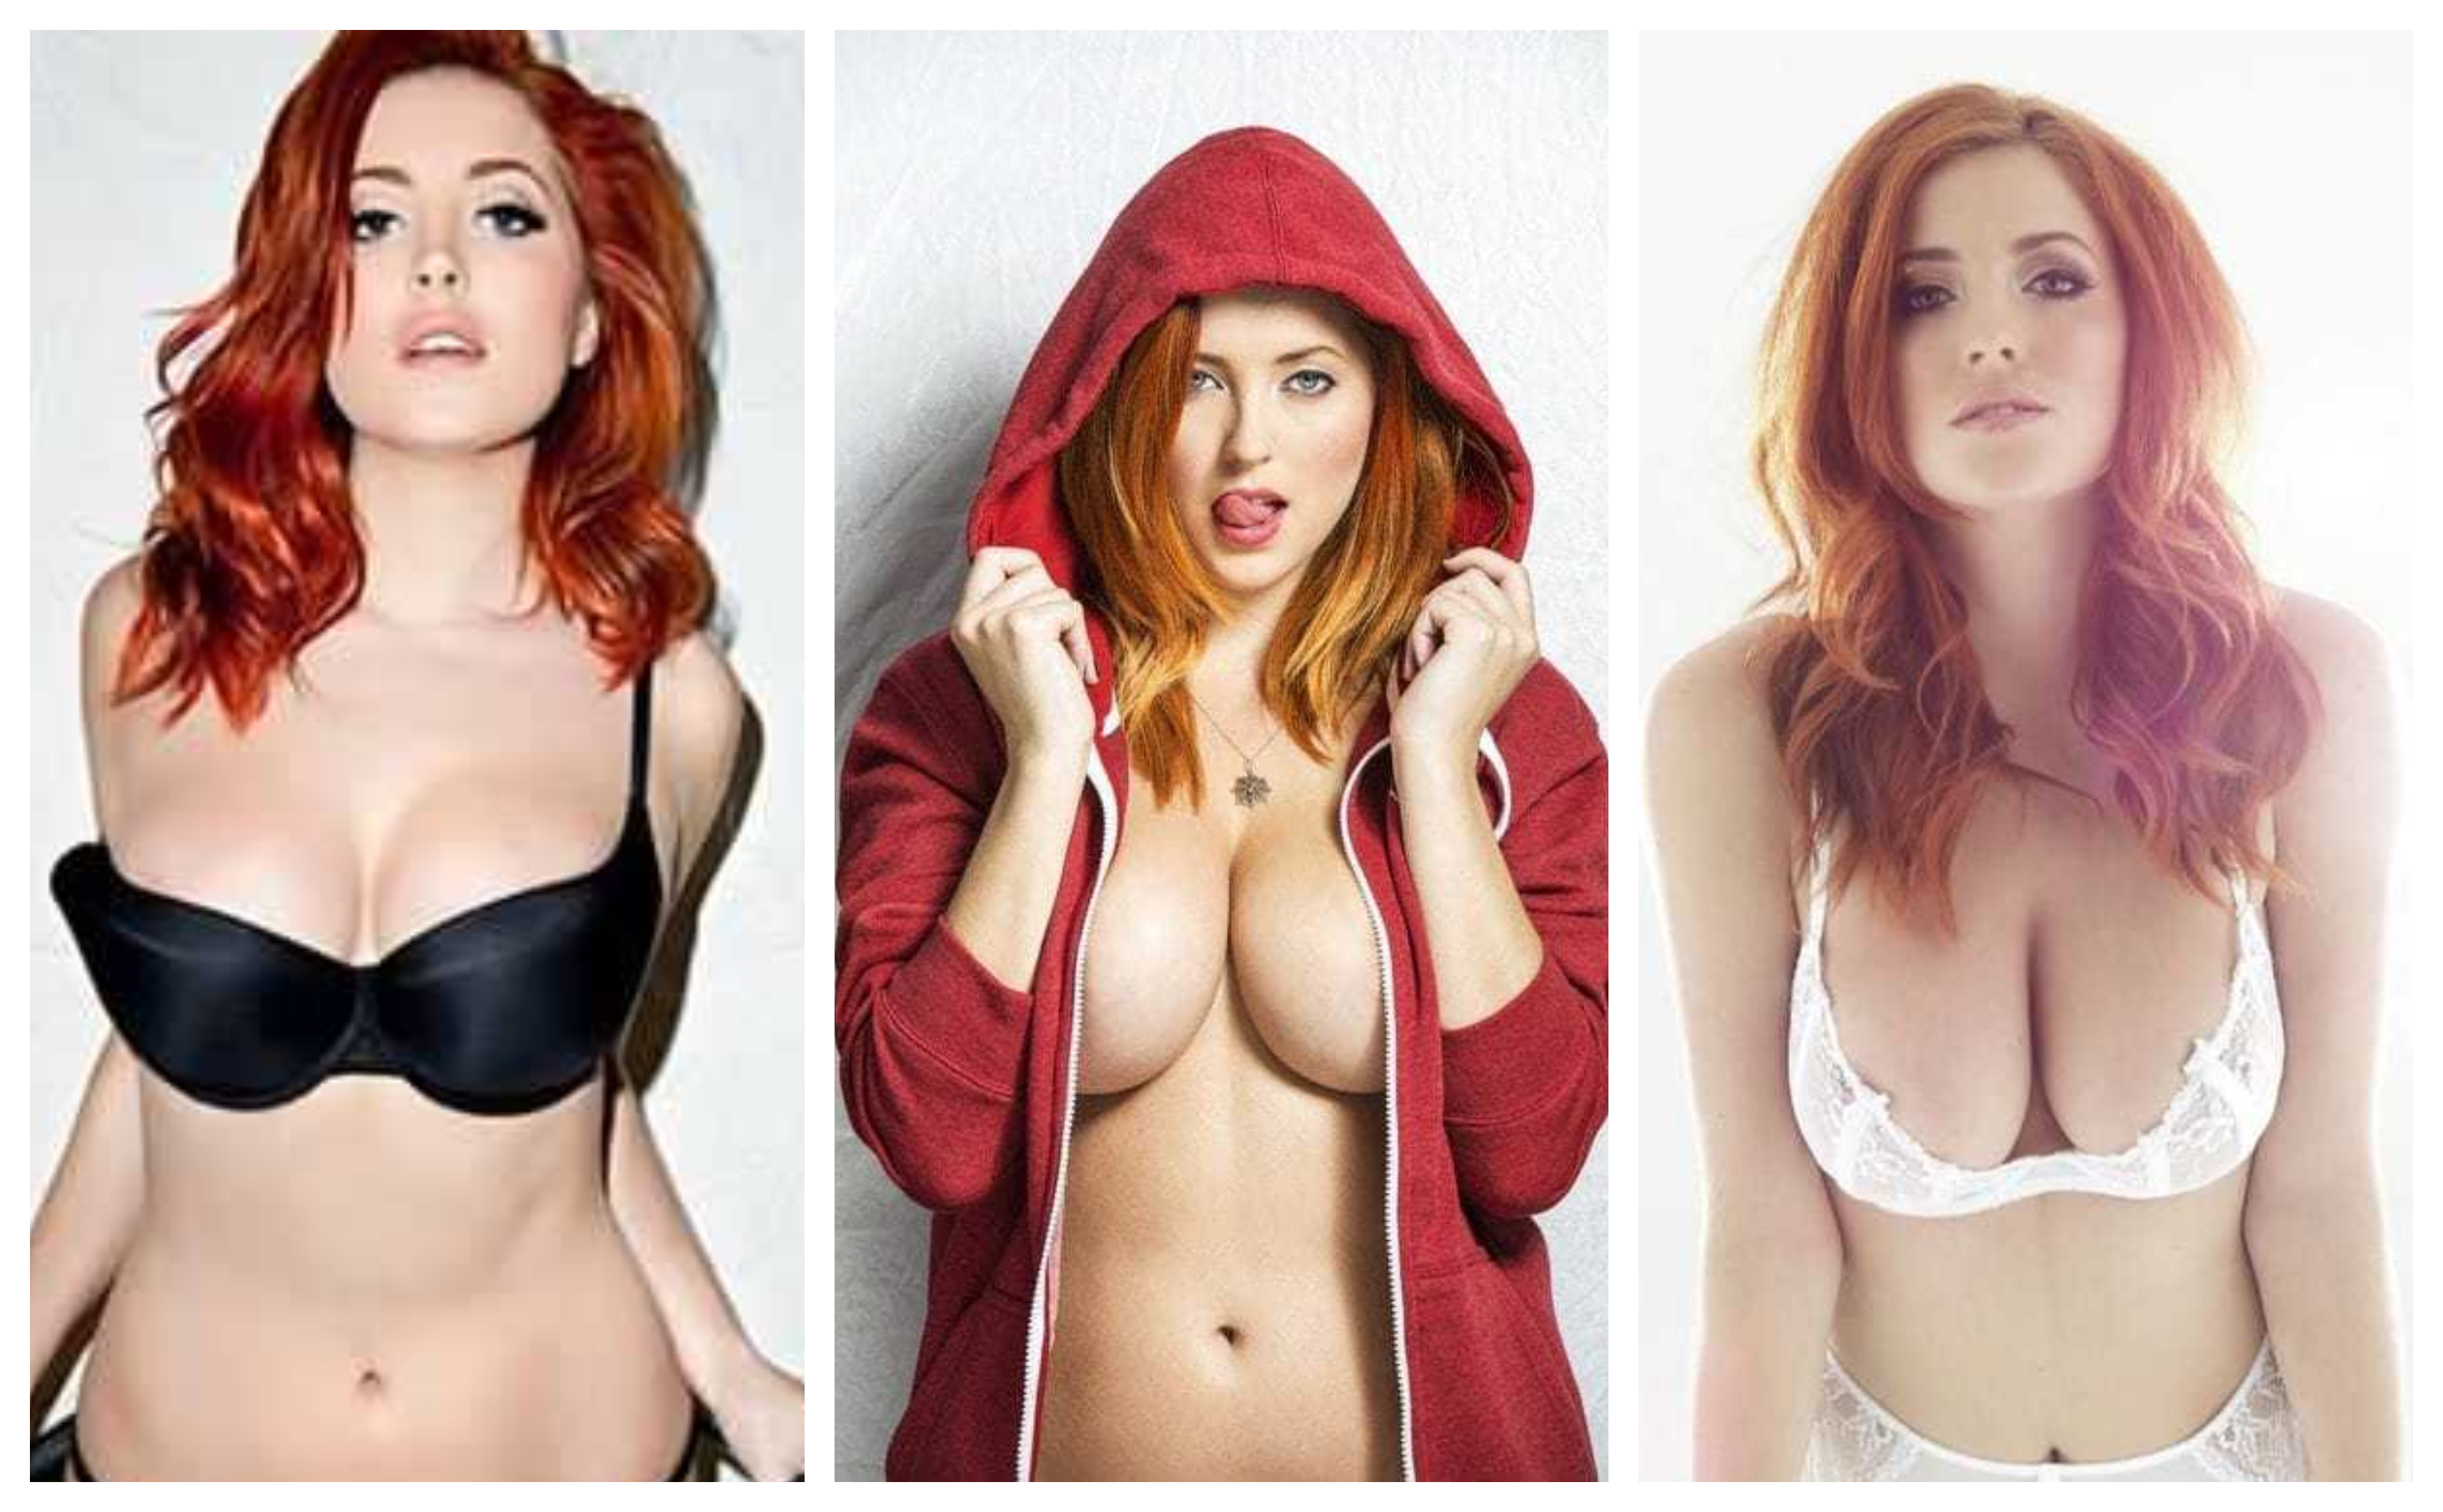 61 Sexy Lucy Collett Pictures That Will Make You Begin To Look All Starry Eyed At Her